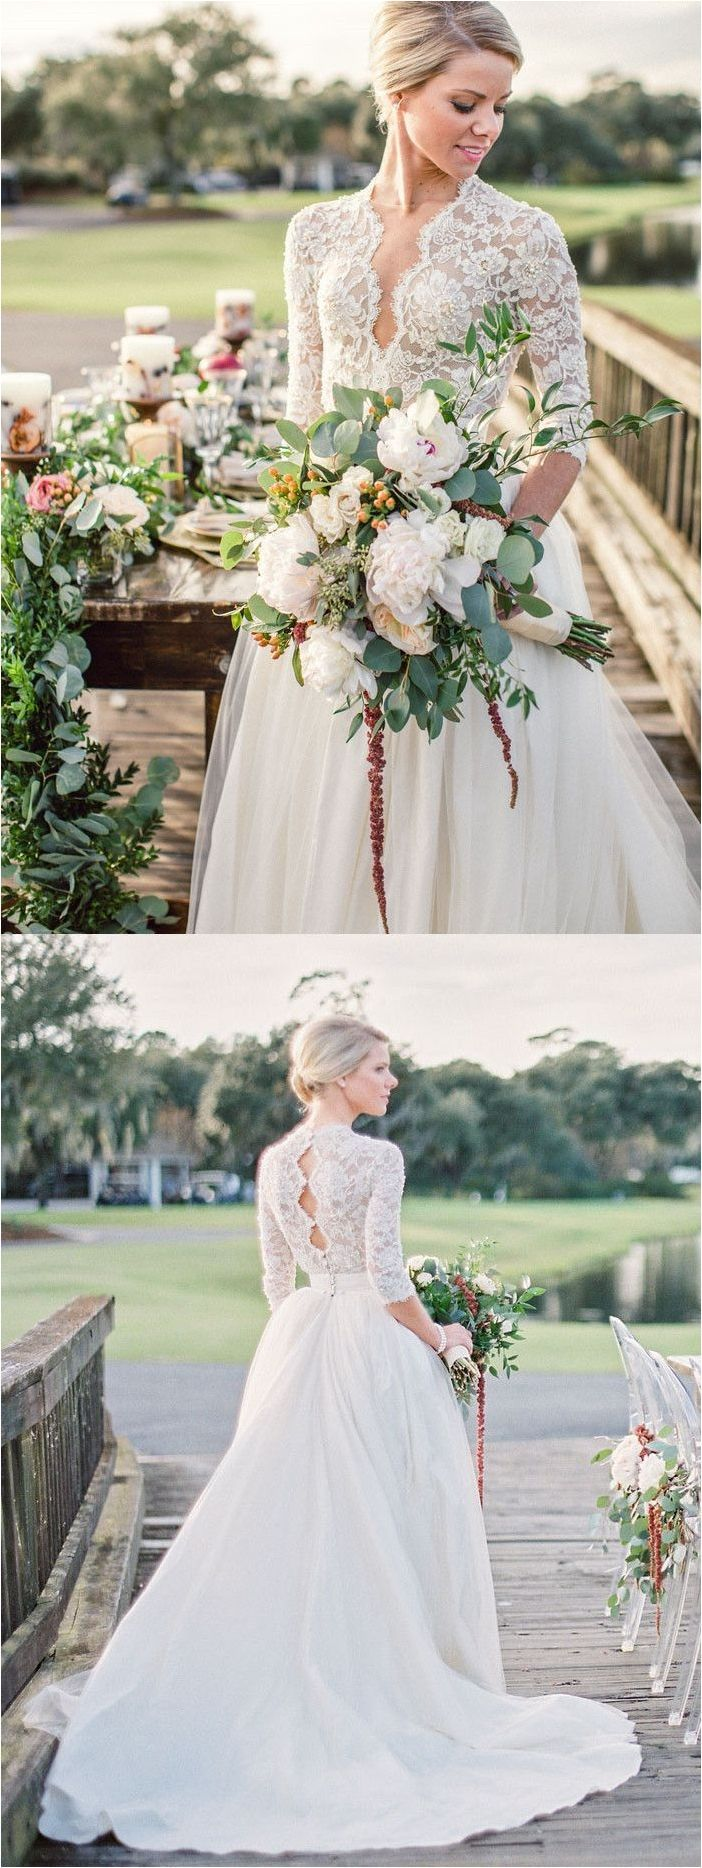 Wedding decorations tulle and lights october 2018 Pin by Emily Toohey on One Day  Pinterest  Lace wedding dresses